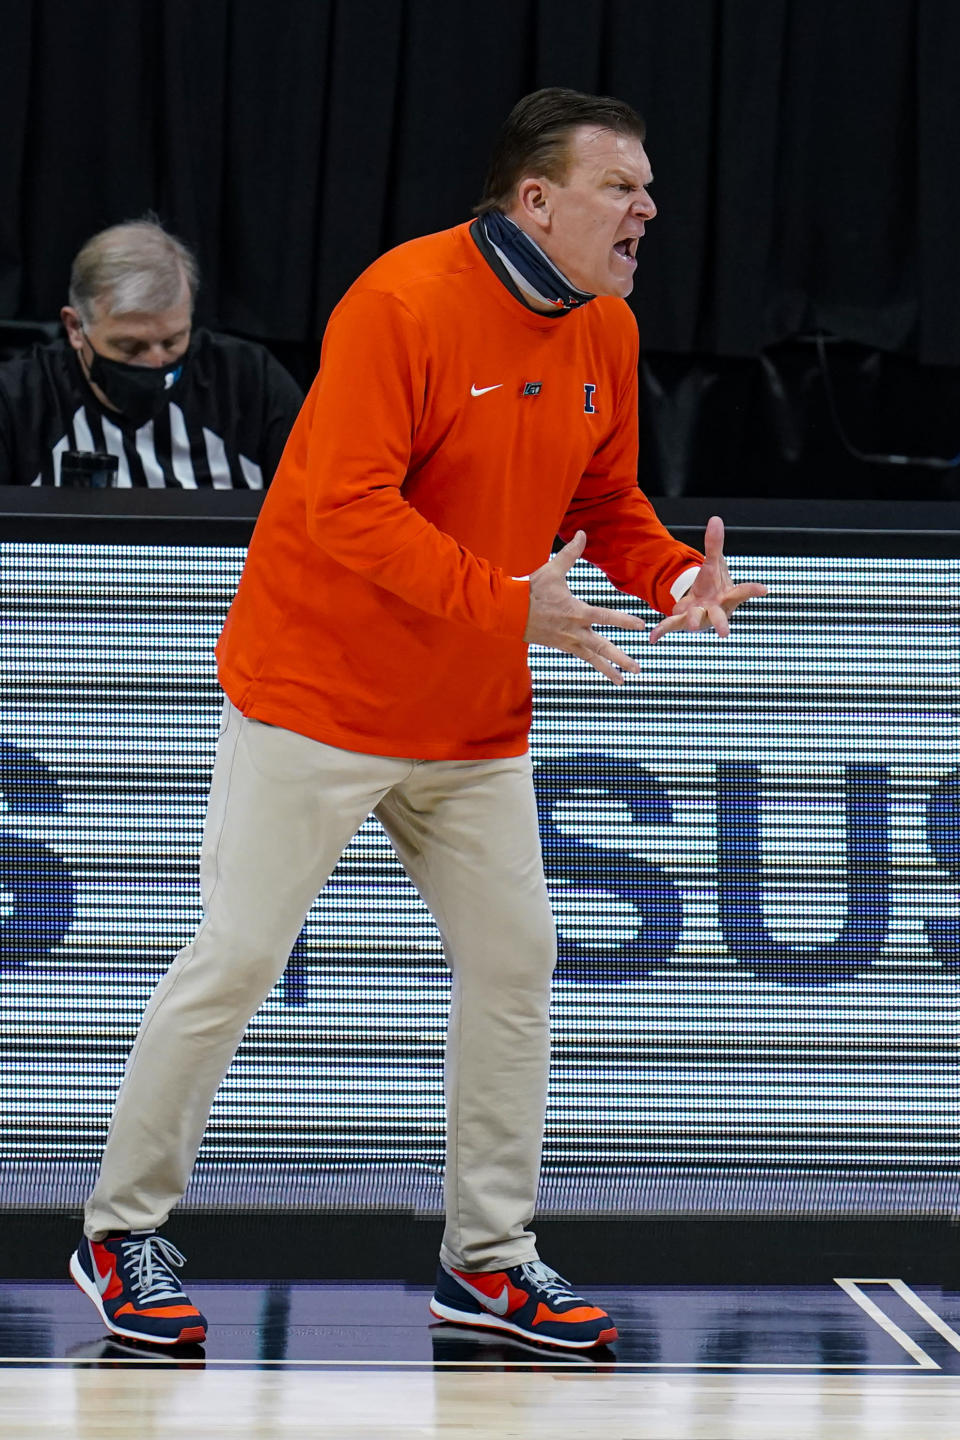 Illinois head coach Brad Underwood questions a call during the second half of an NCAA college basketball championship game against Ohio State at the Big Ten Conference tournament, Sunday, March 14, 2021, in Indianapolis. (AP Photo/Michael Conroy)